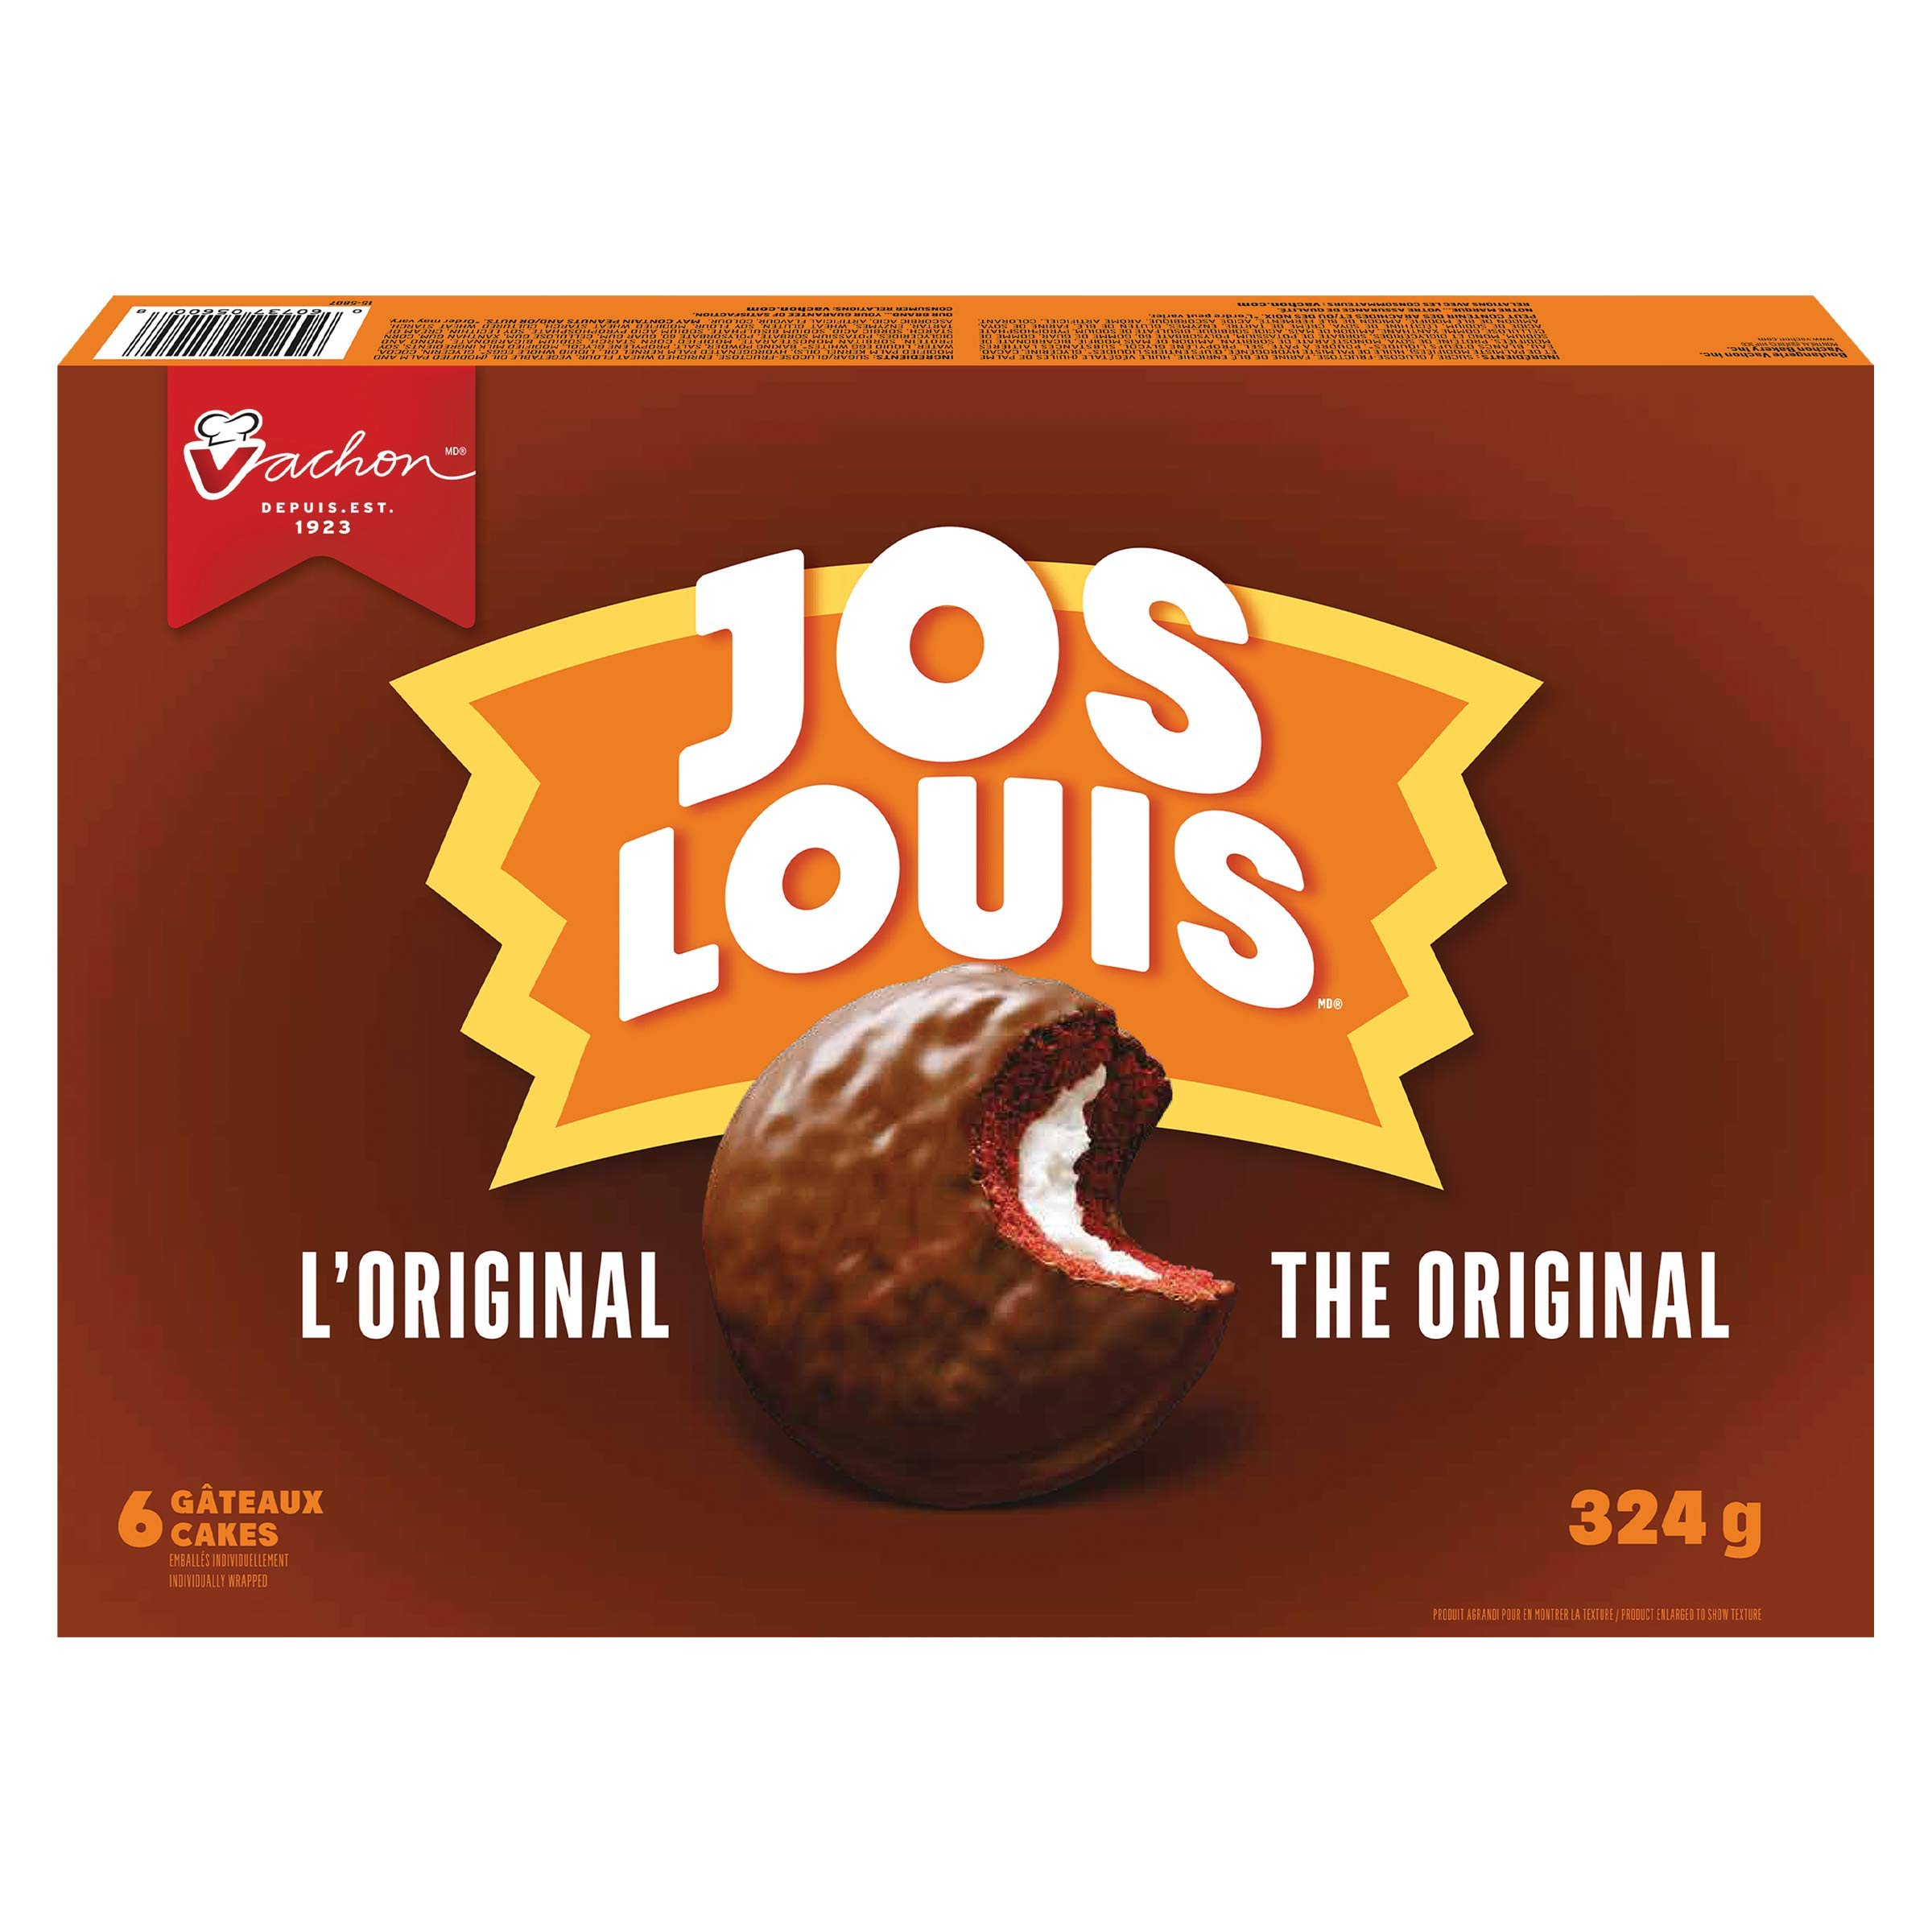 Vachon Jos Louis the Original 6-delicious Sponge Cake with Vanilla-flavoured Creme Filling Coated in a Chocolatey Layer, 324g, 11.4 Oz Box. Made in Montreal Quebec Canada